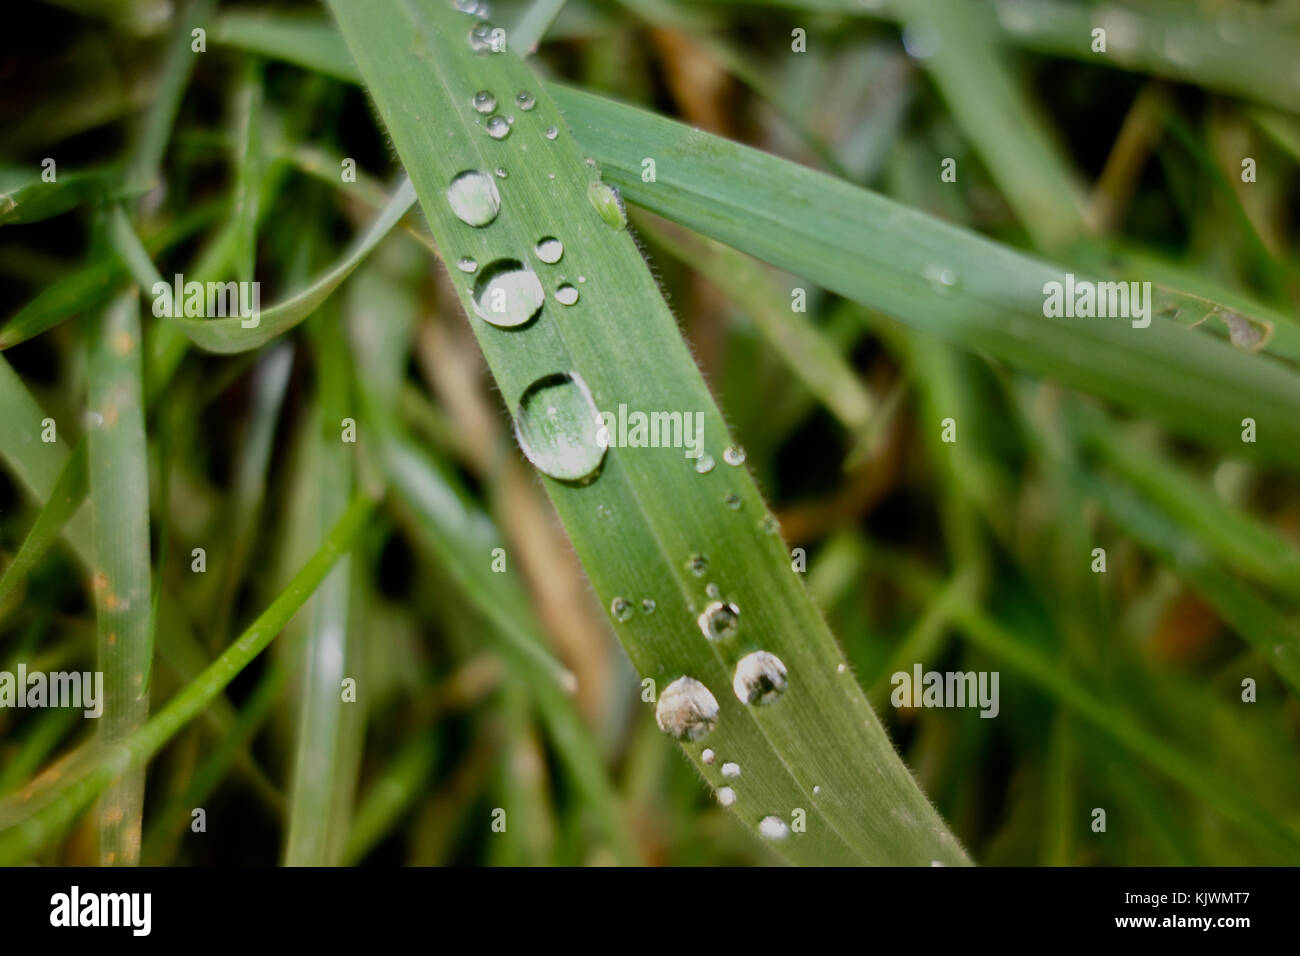 Close up of water drops on a green blade of grass. - Stock Image